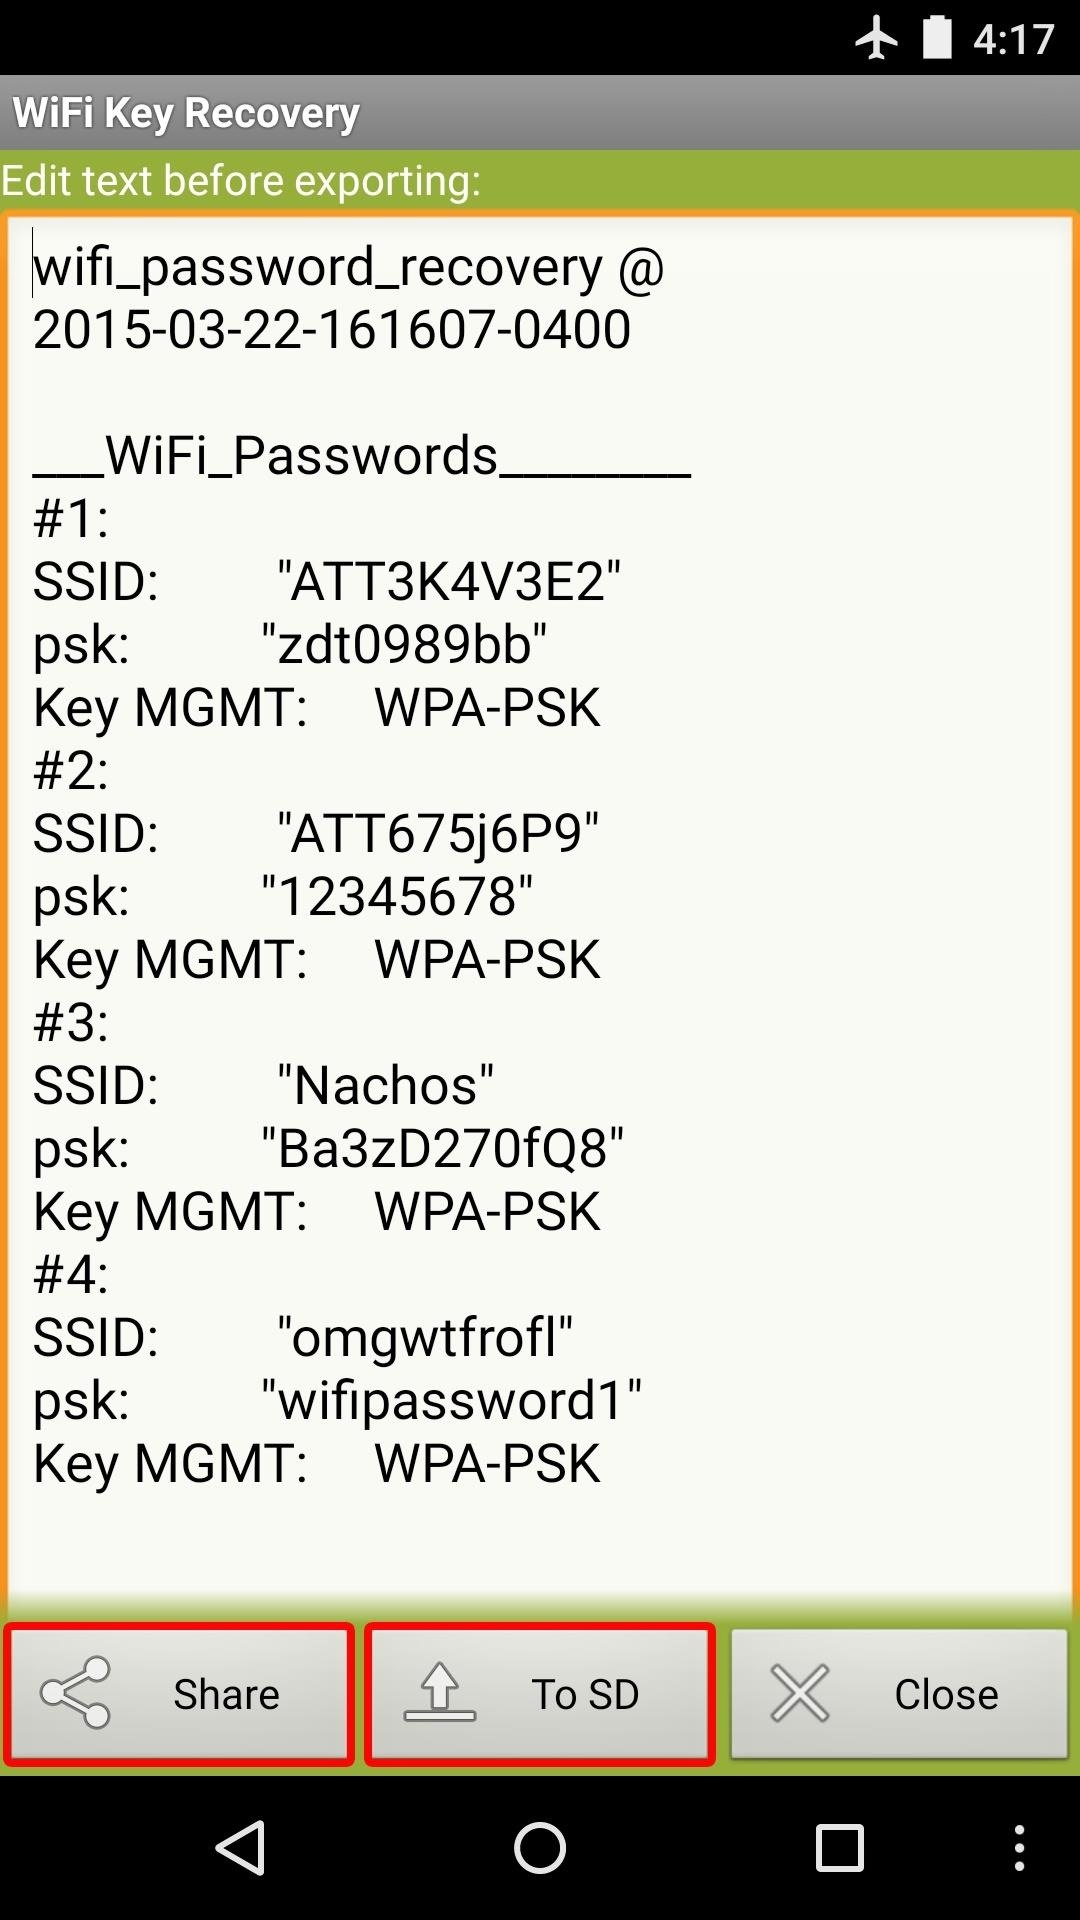 How to find the password, knowing the login 7